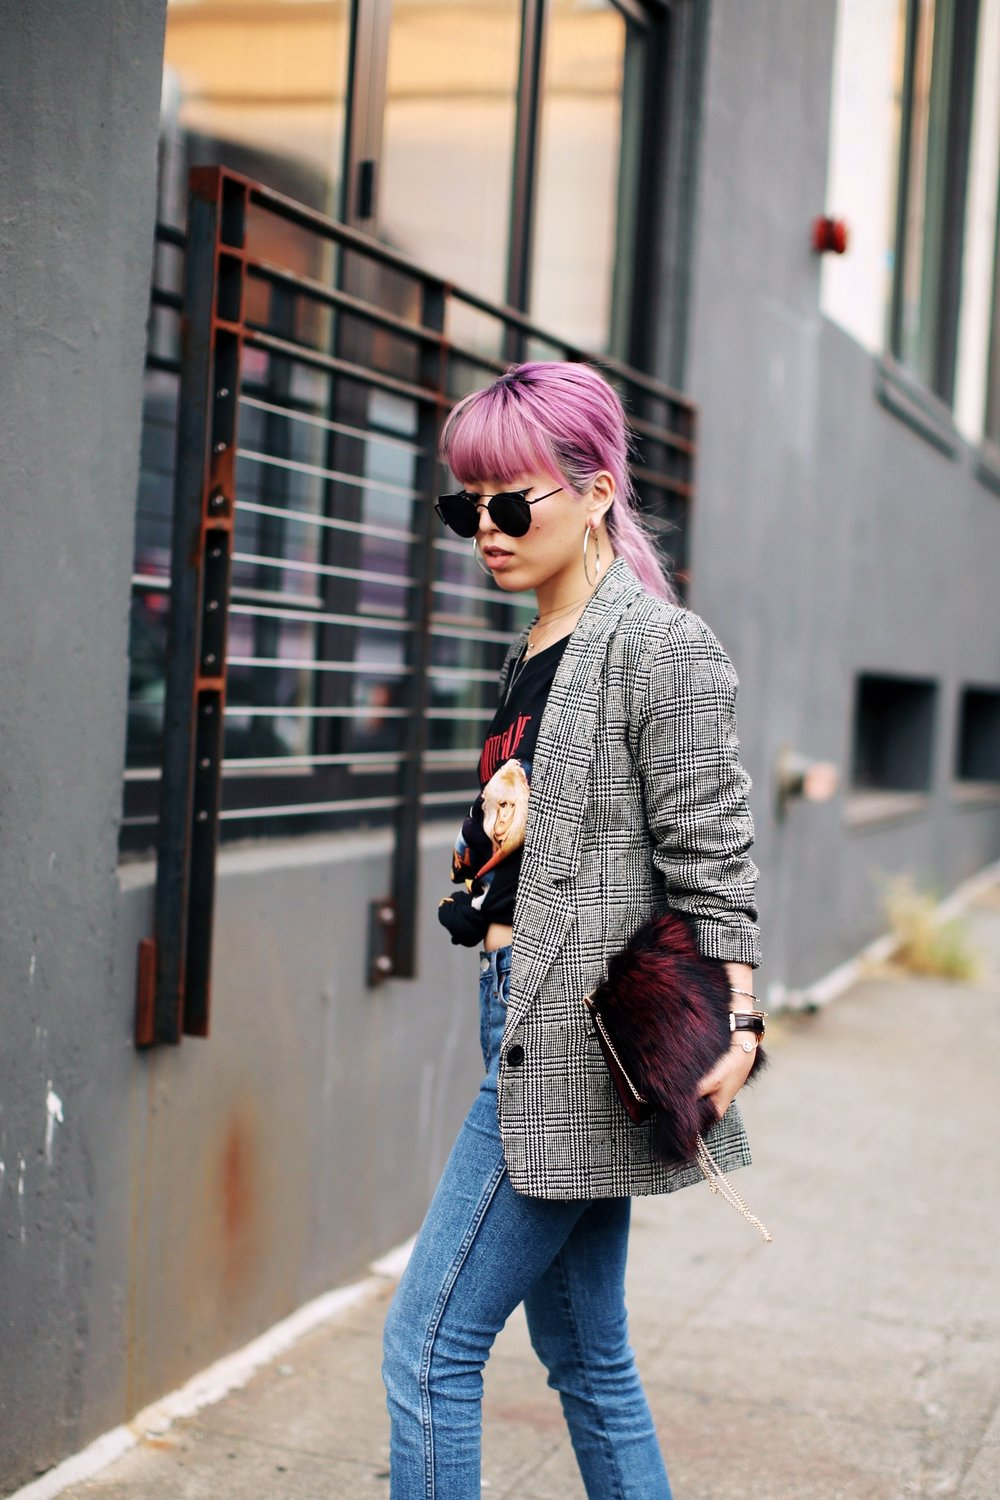 Nordstrom Plaid Blazer_Vintage Rockband Tee_Free People High Waisted Jeans_Daniel Wellington Watch_ASOS Black Mules_DVF Fur Bag_Pink Hair_Aika's Love Closet_Seattle Fashion Style Blogger_Japanese 6